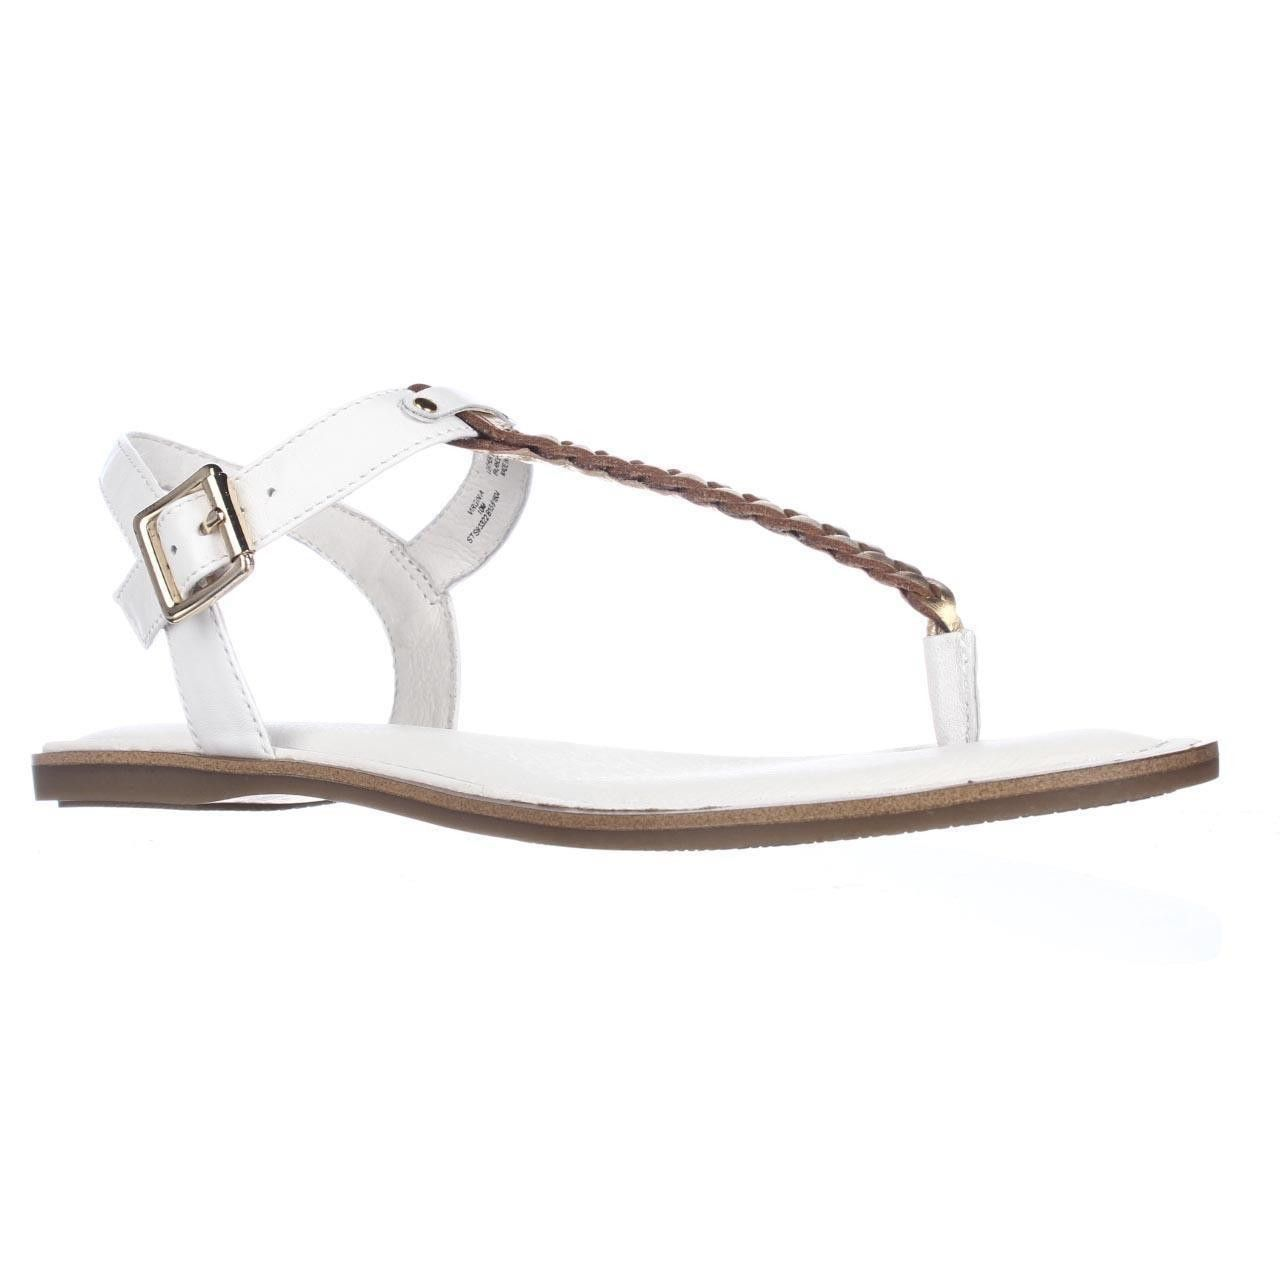 Sperry Top-Sider Virginia T-Strap Ankle Strap Sandals - White